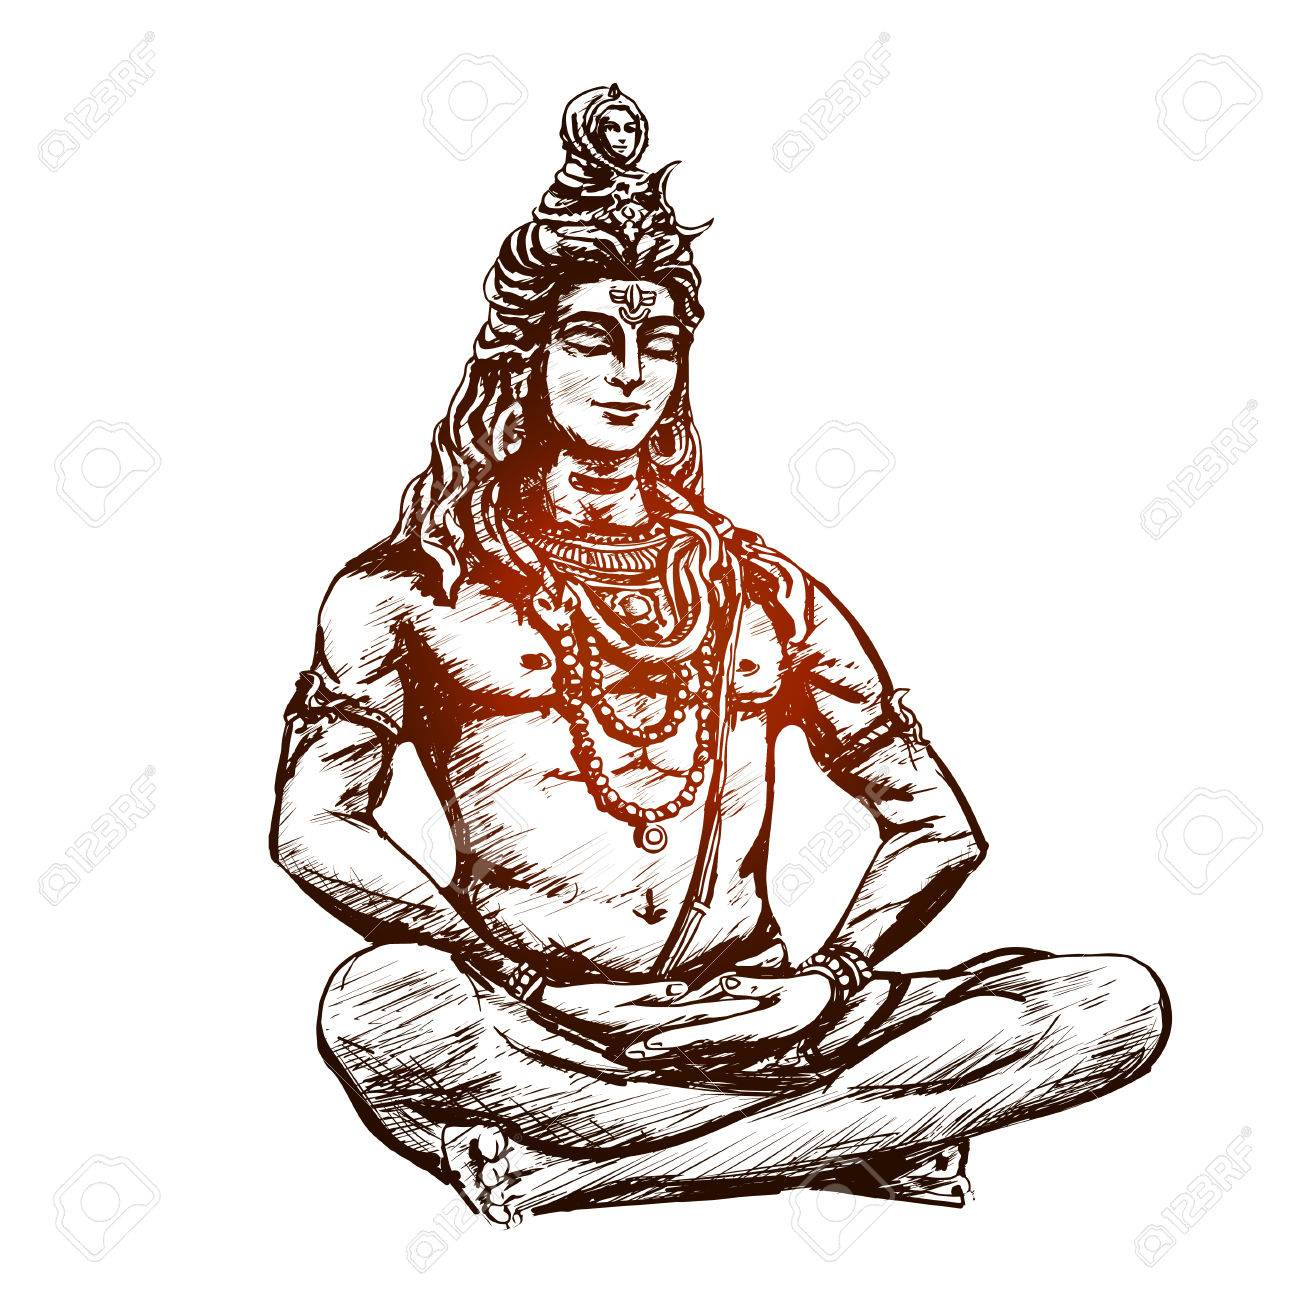 Lord Shiva in the lotus position and meditate. Om Namah Shivaya. Black and  white